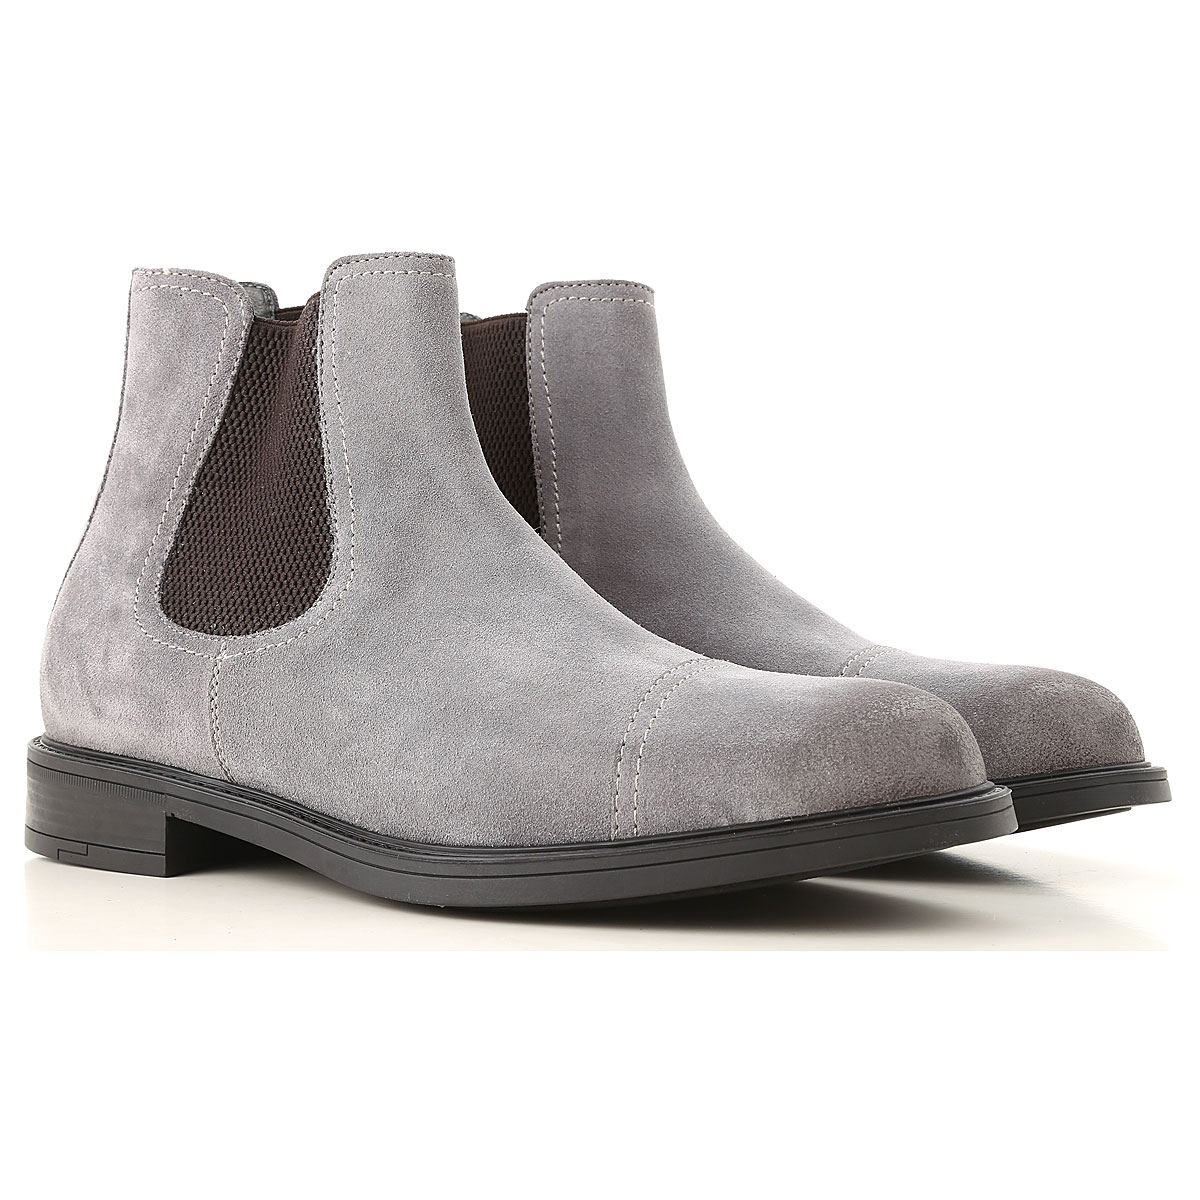 Moreschi Chelsea Boots for Men On Sale in Outlet, Grey, Suede leather, 2019, 8 9 9.5